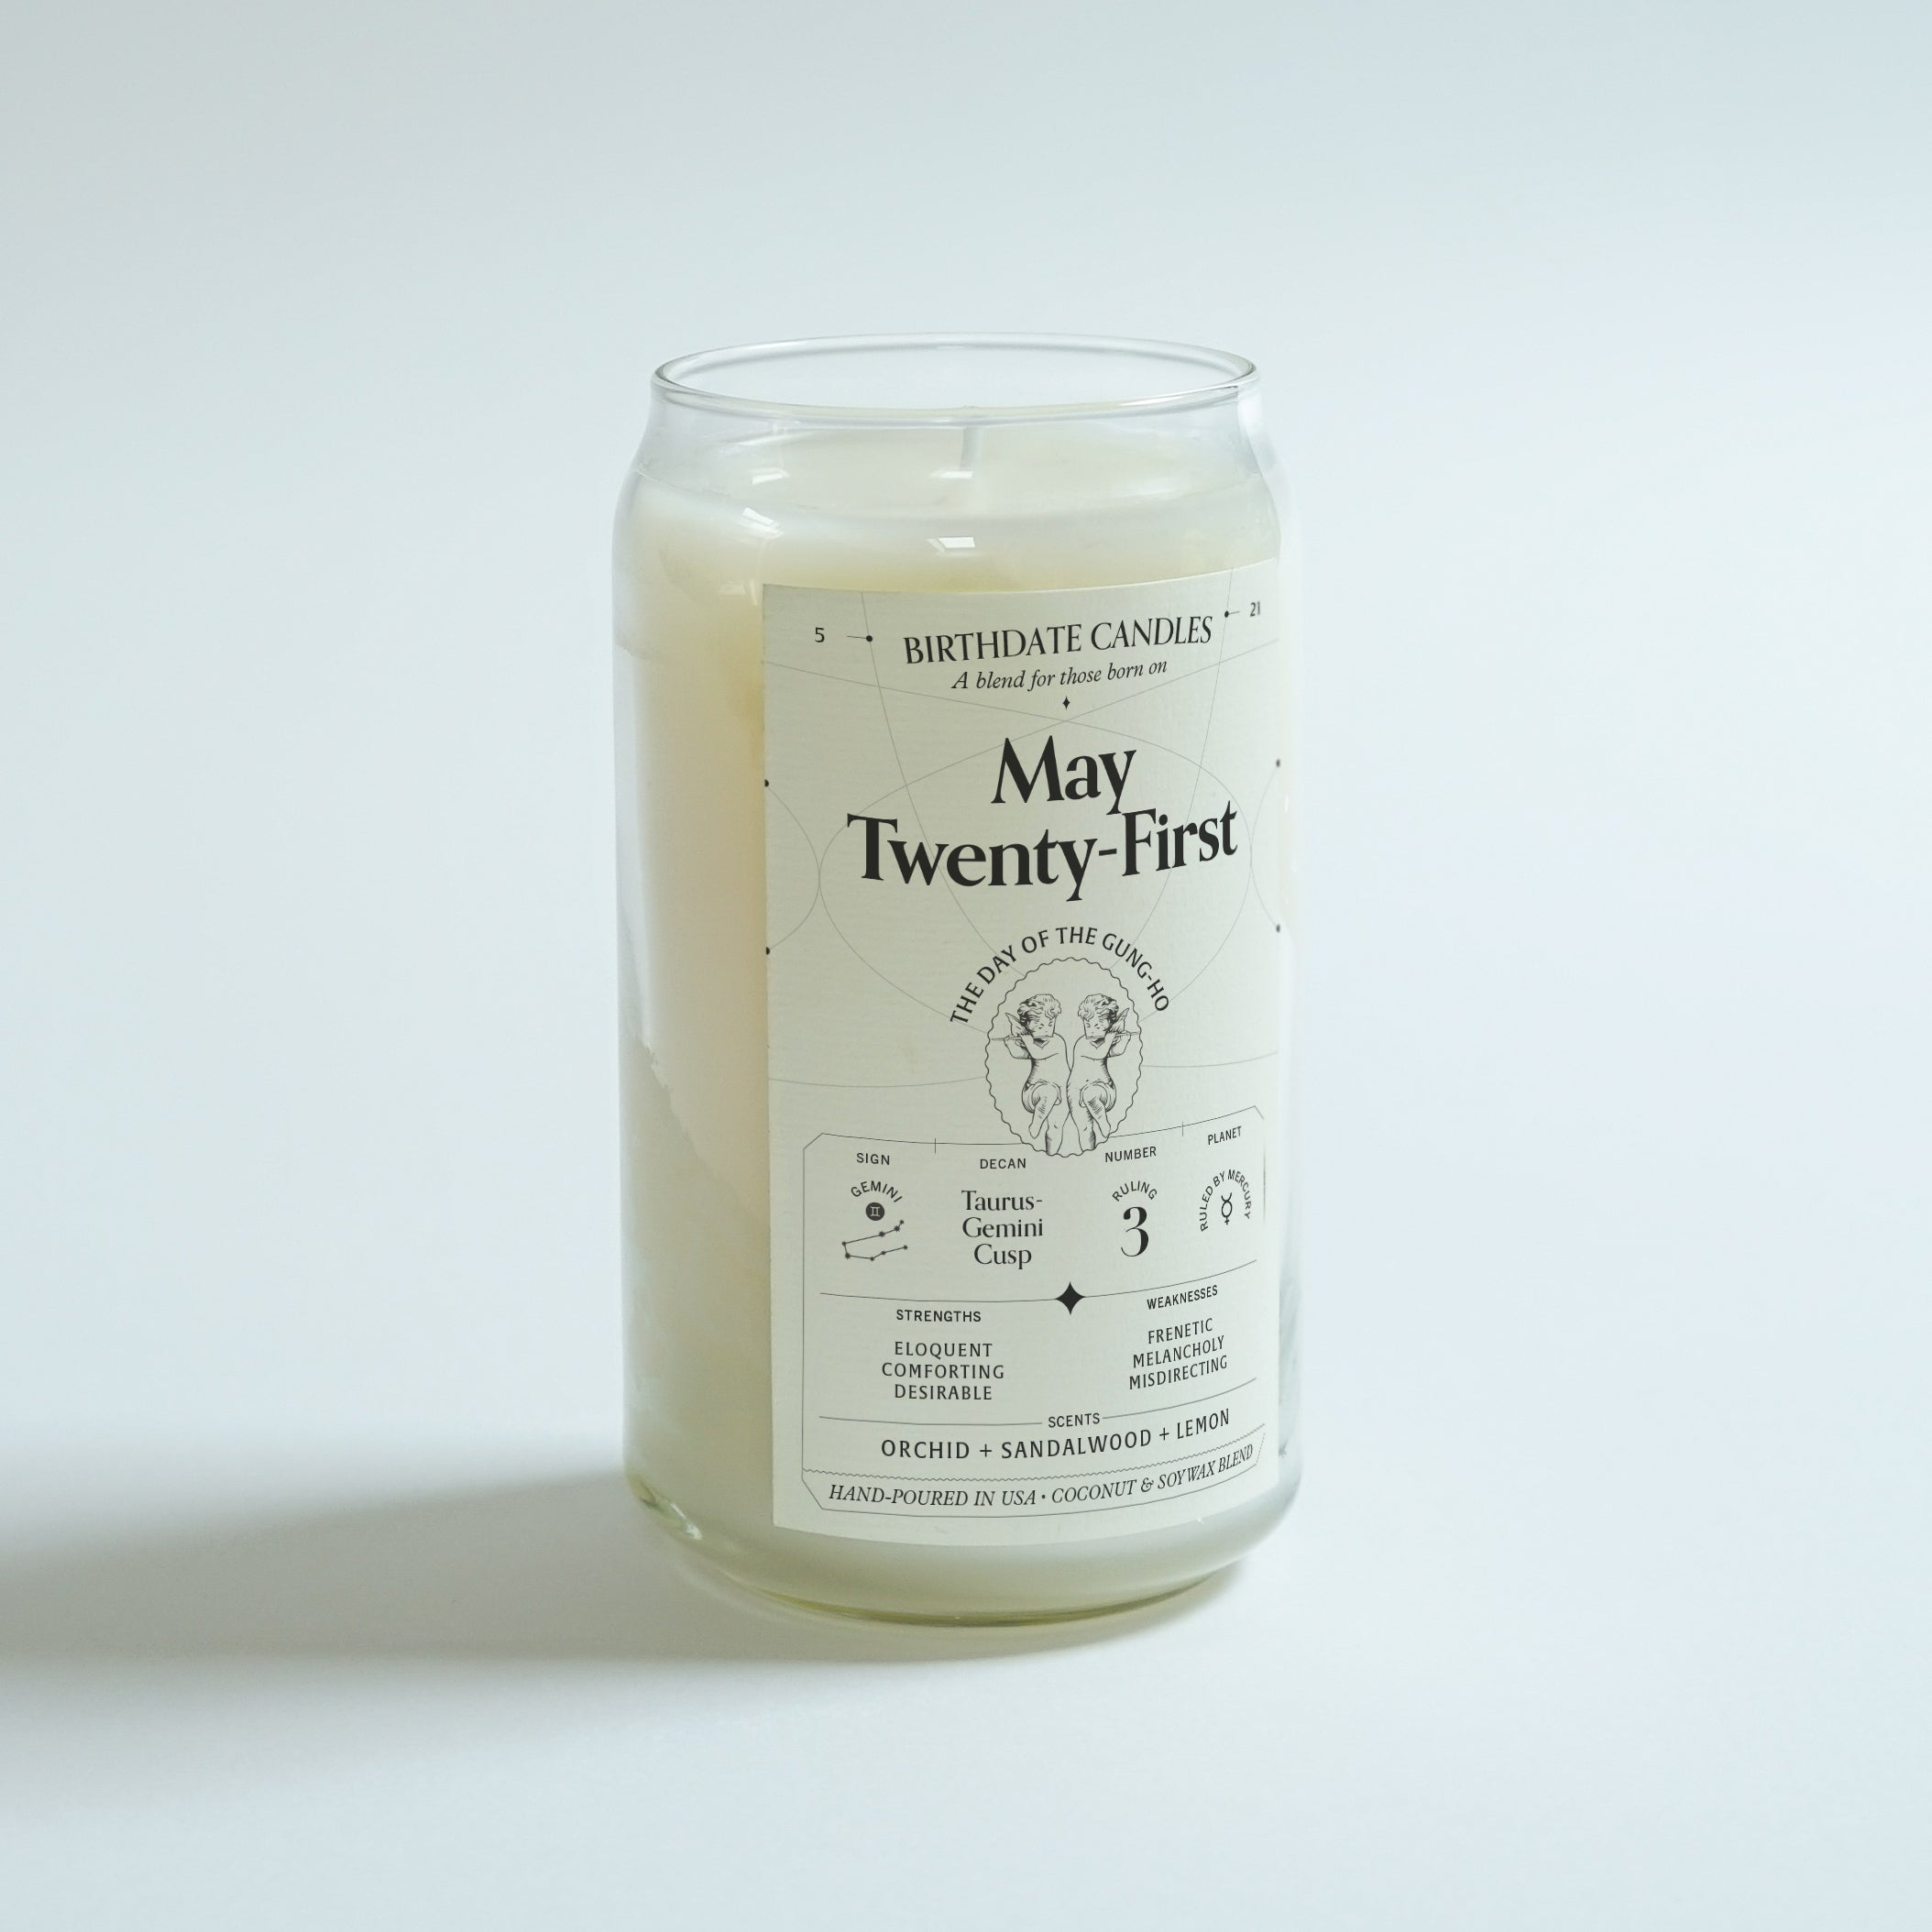 The May Twenty-First Candle